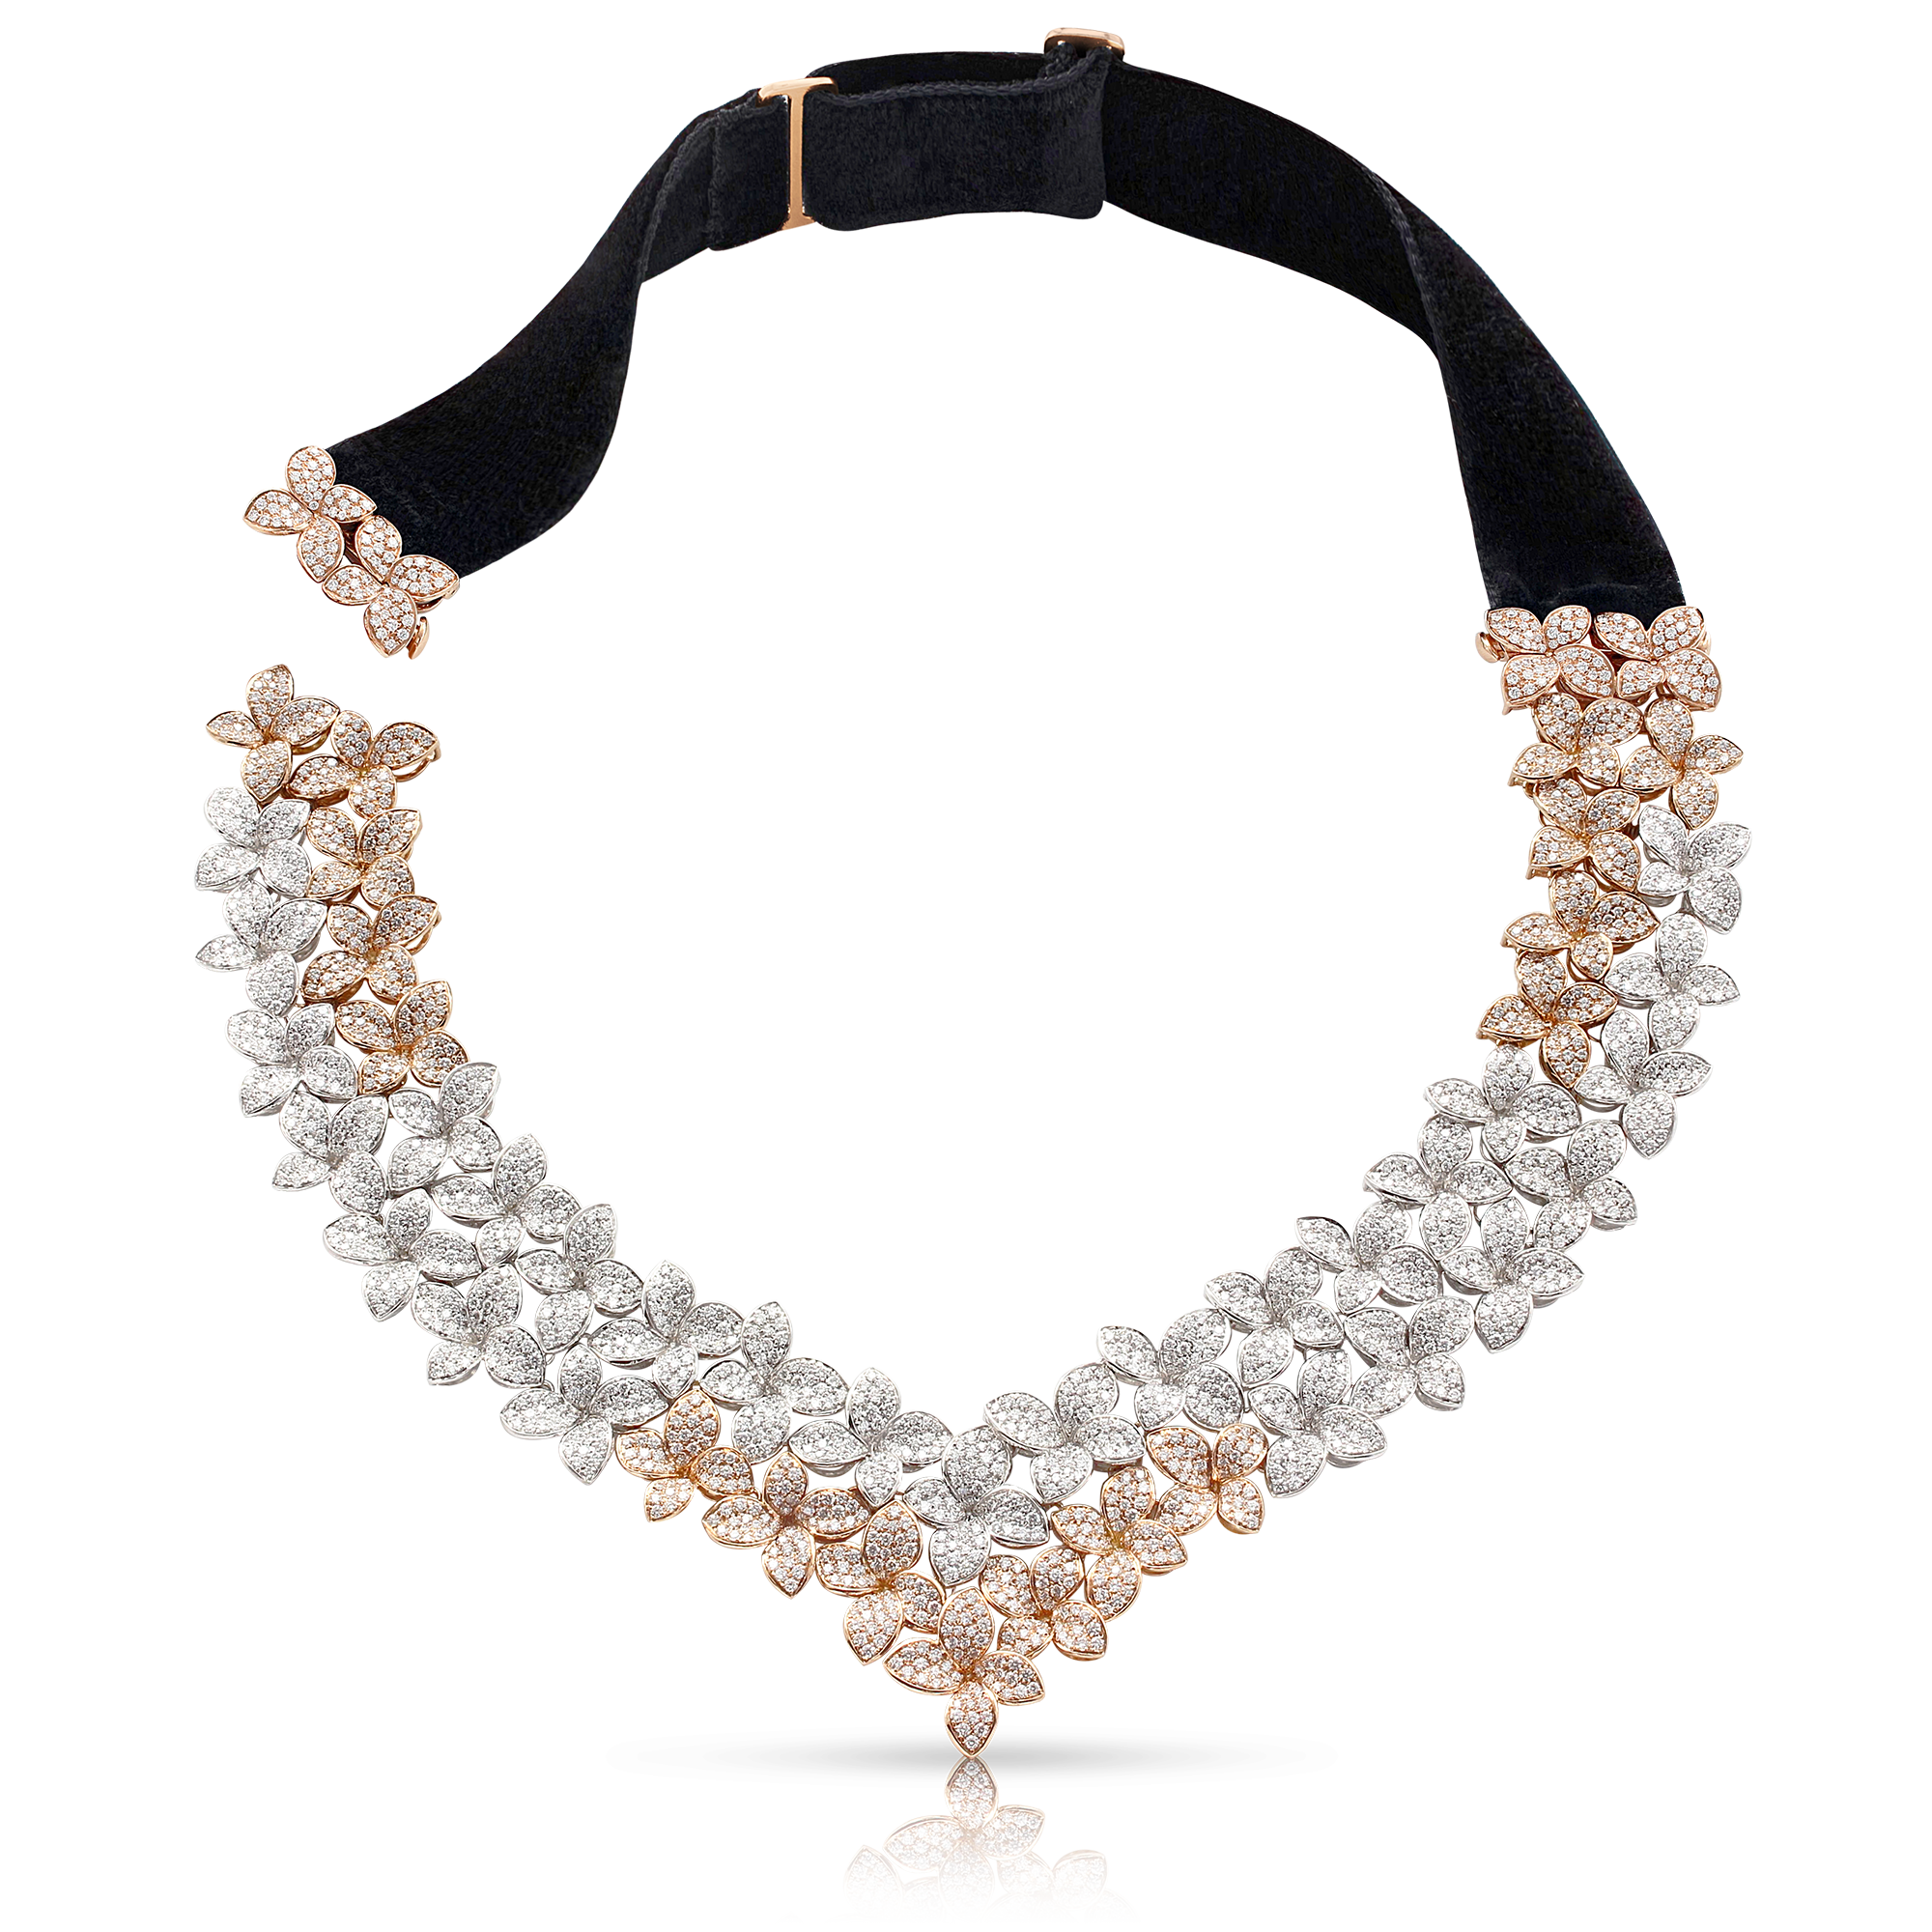 NEW 18k White and Rose Gold Goddess Garden Necklace with White and Champagne Diamonds and Velvet Strap